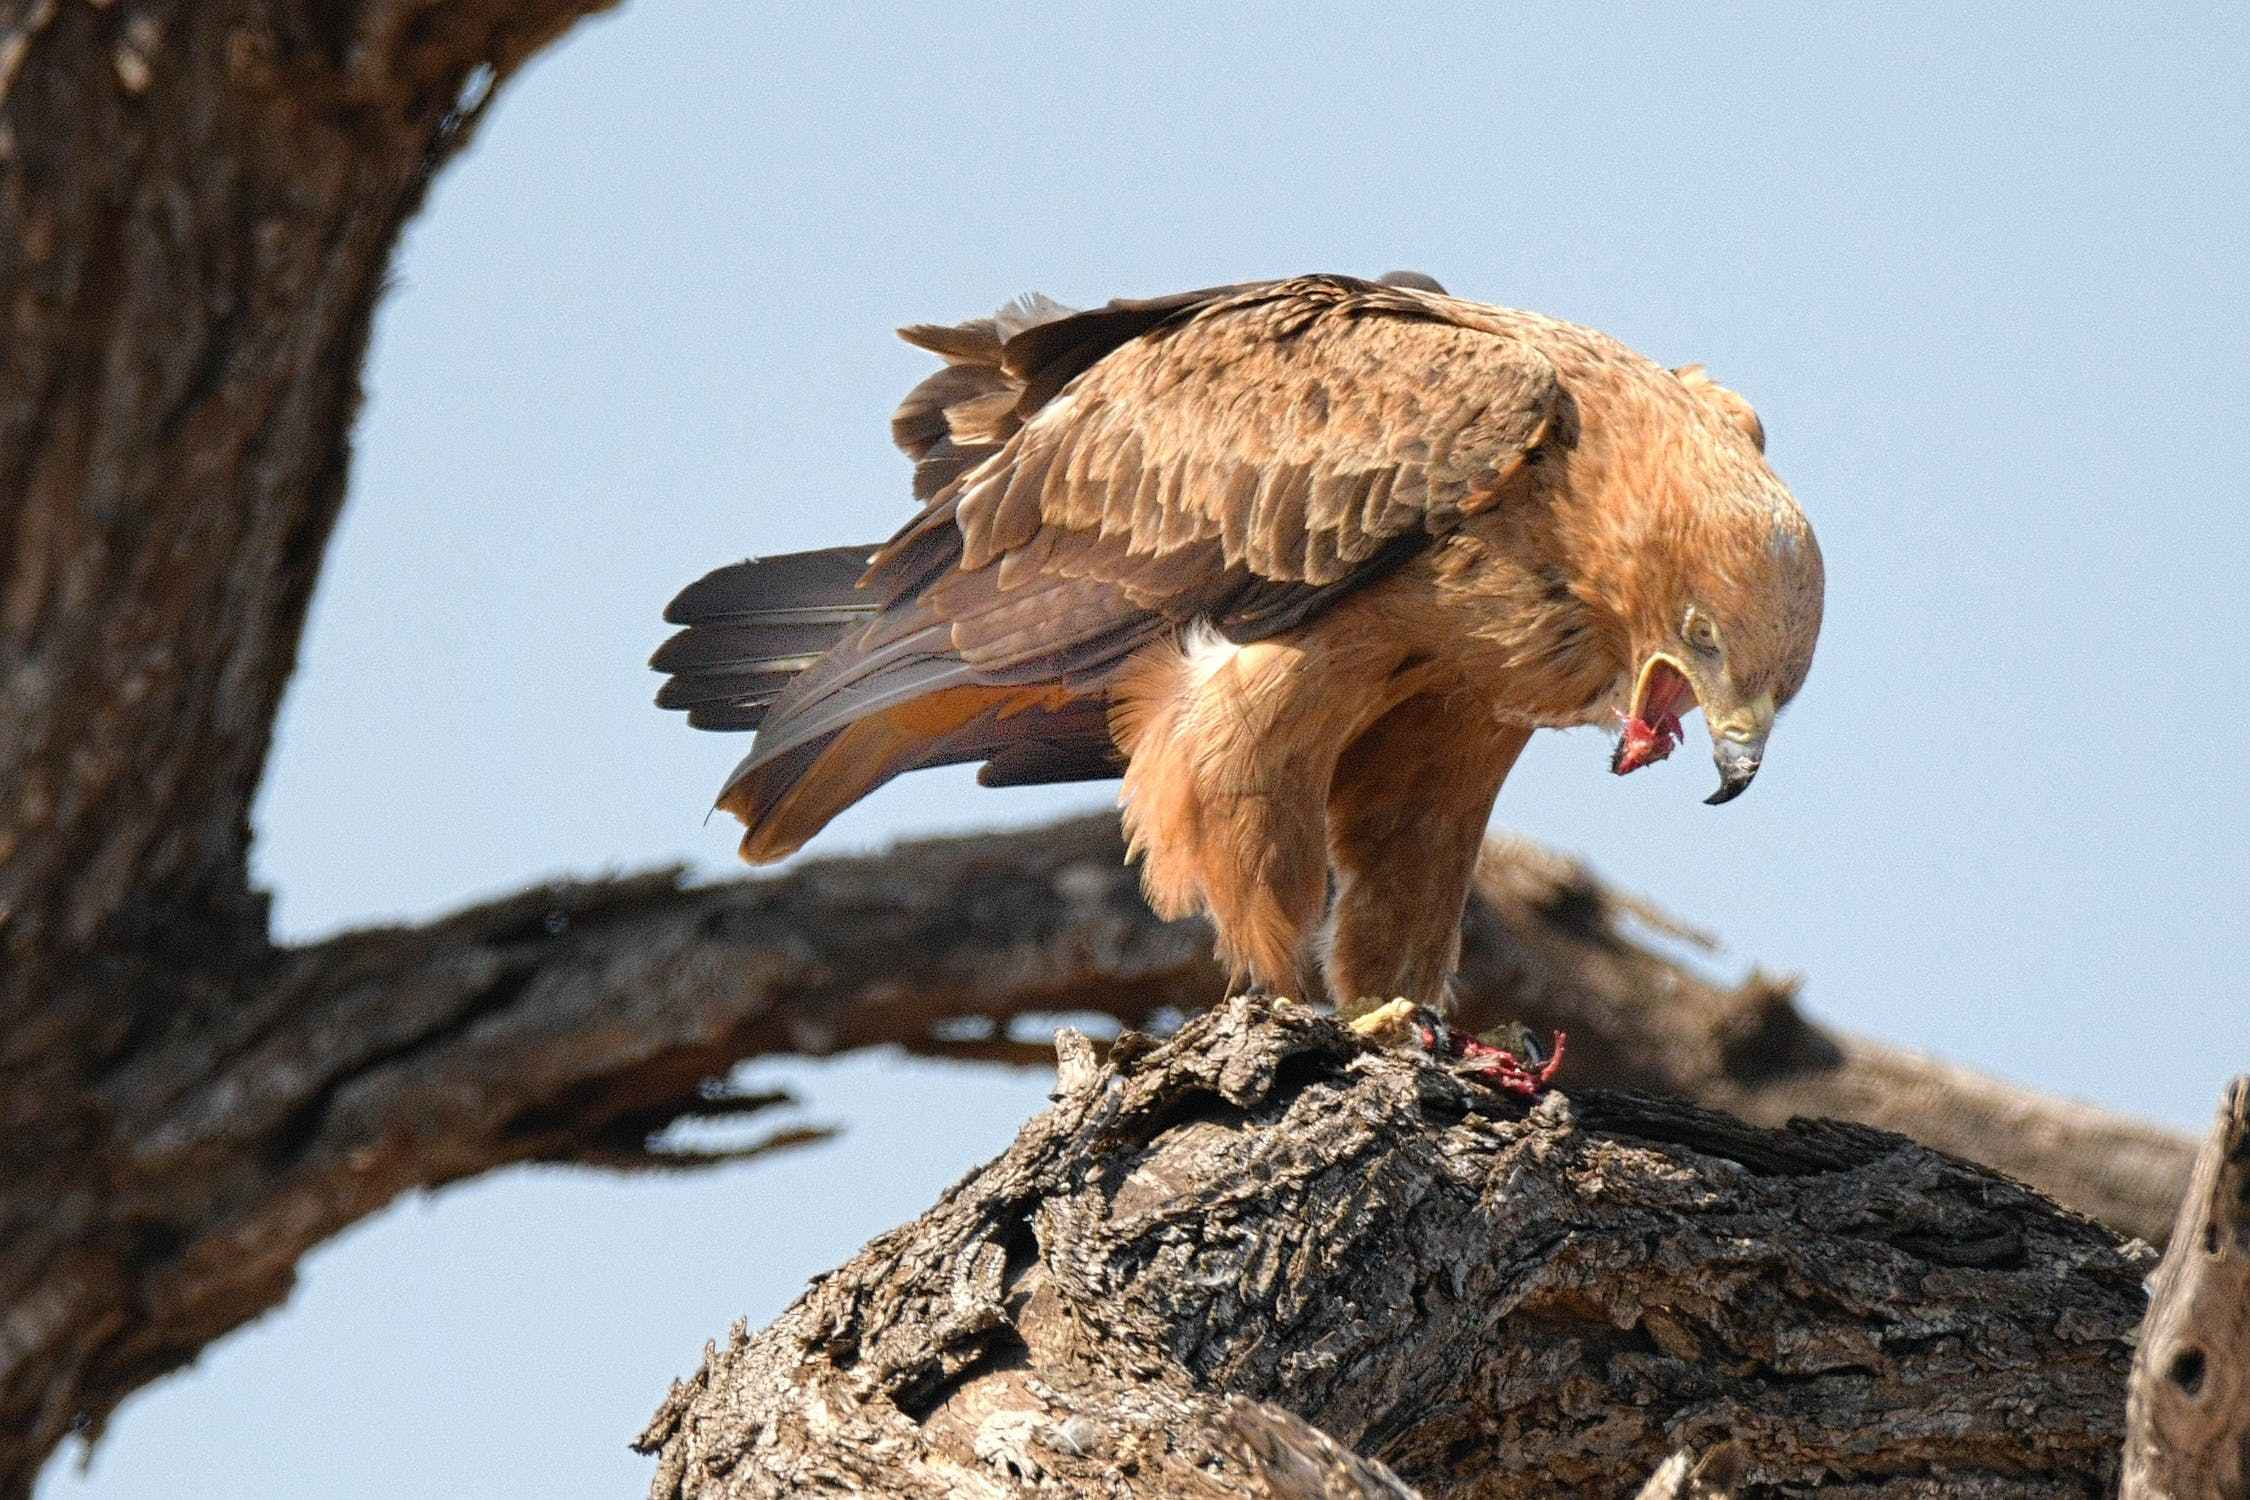 eagles are known to eat hawks